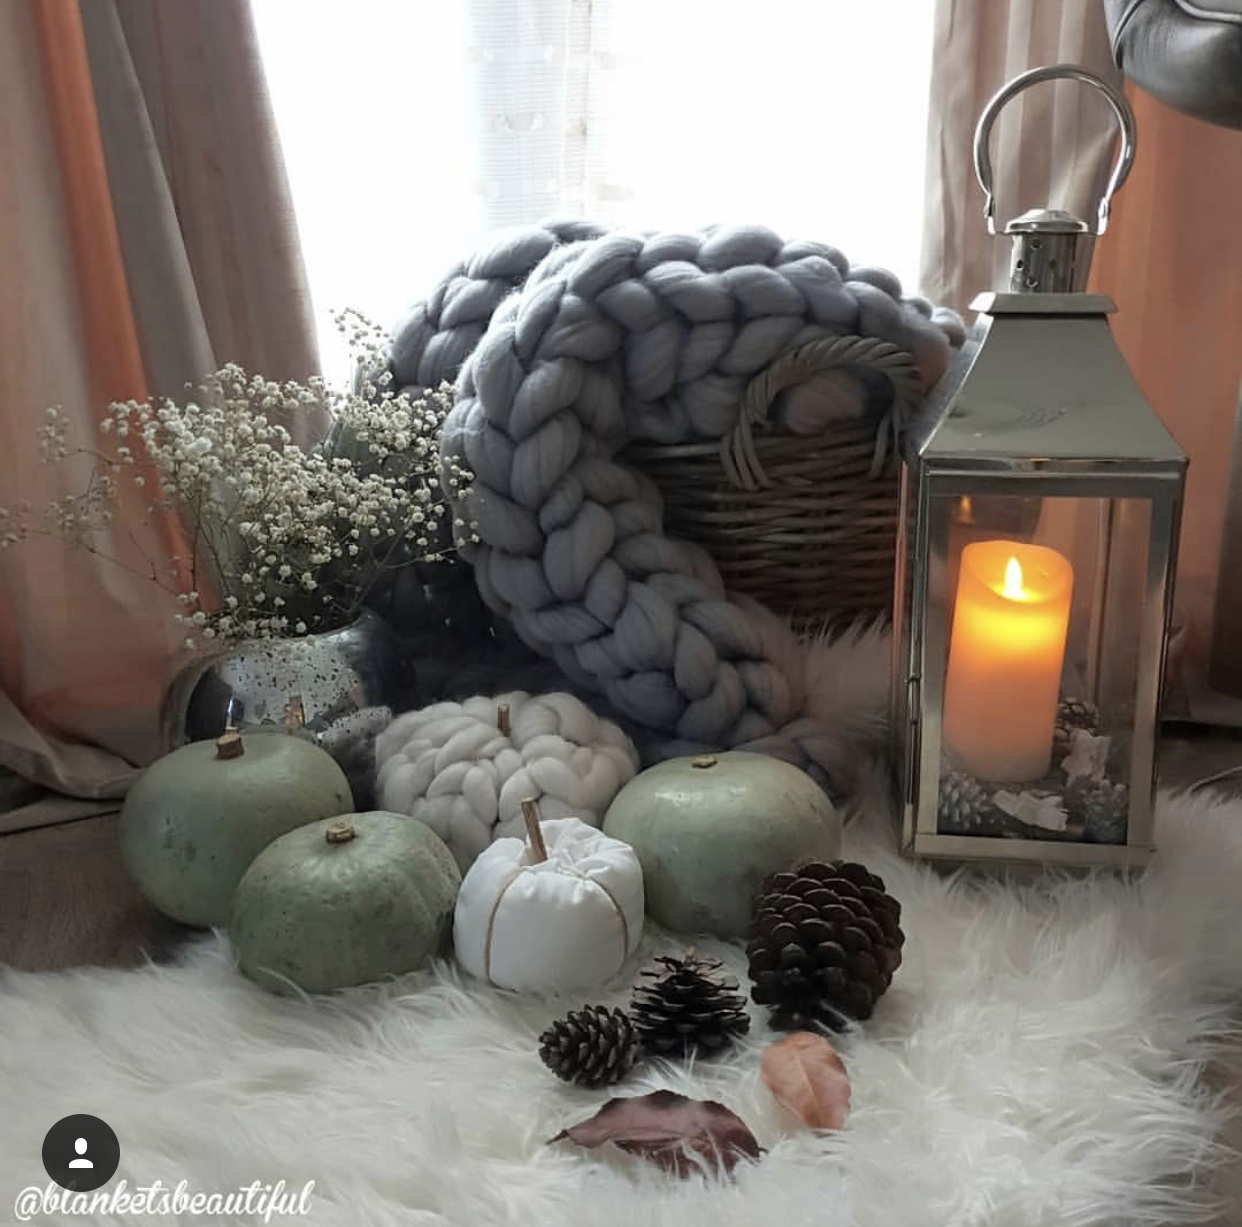 The epitome of cosy, a fabulous chunky knit throw by Blankets Beautiful - Instagram: @blanketsbeautiful